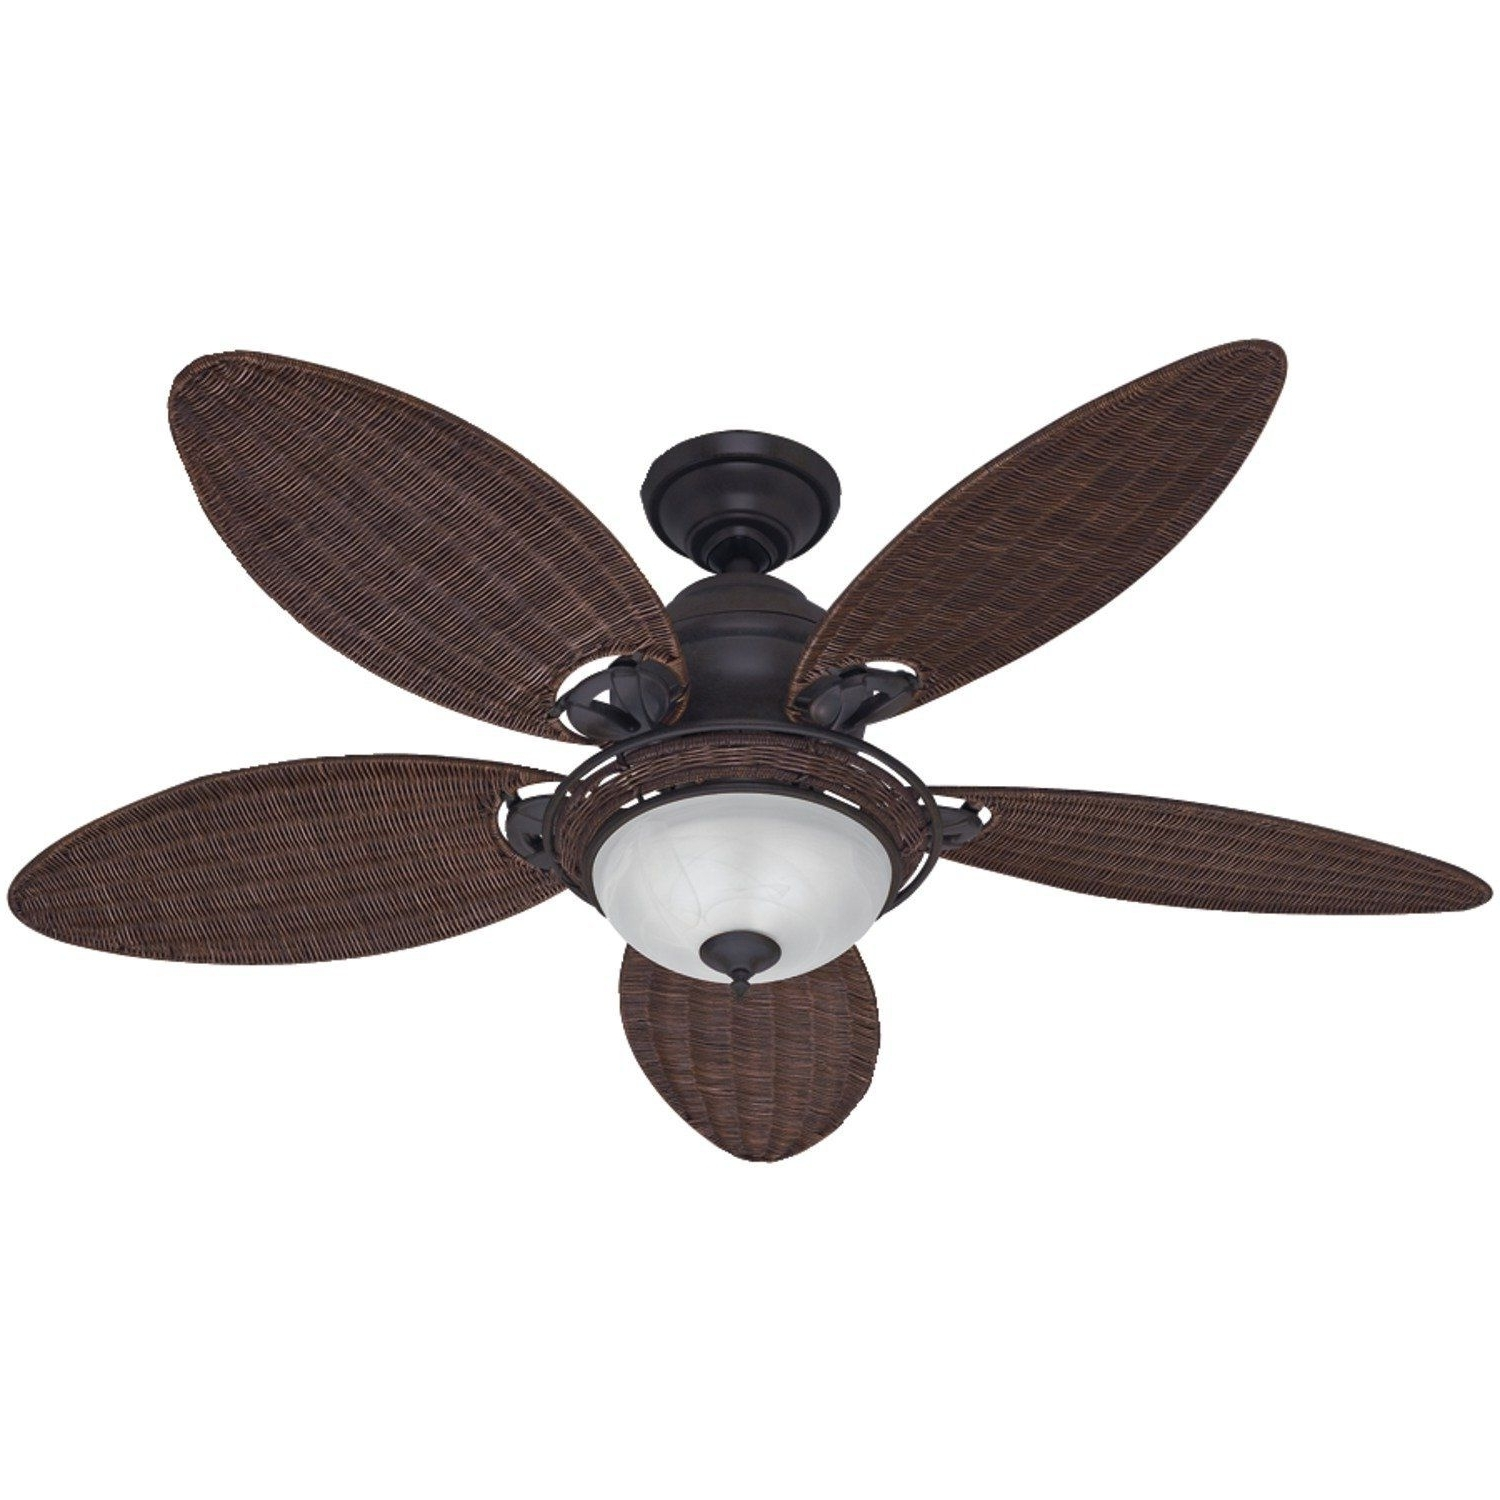 Amazon: Hunter Fan Company 54095 Caribbean Breeze 54 Inch Regarding Well Known Wicker Outdoor Ceiling Fans With Lights (View 3 of 20)